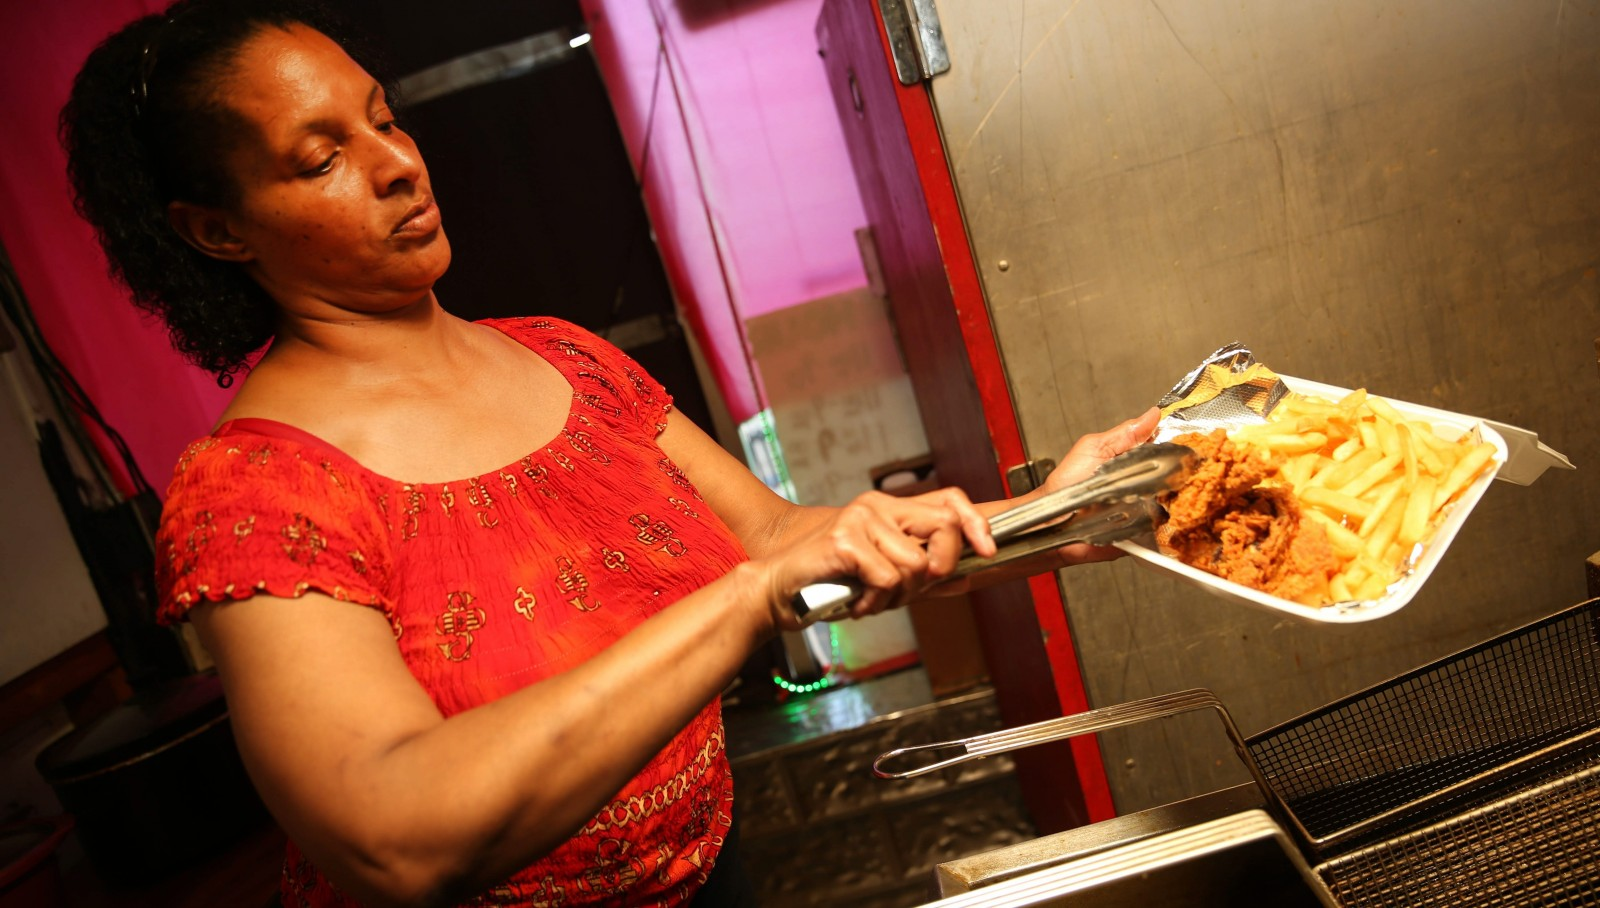 Owner Annette Harper puts together the thigh box - two chicken thighs and french fries - at Nette's Fried Chicken.